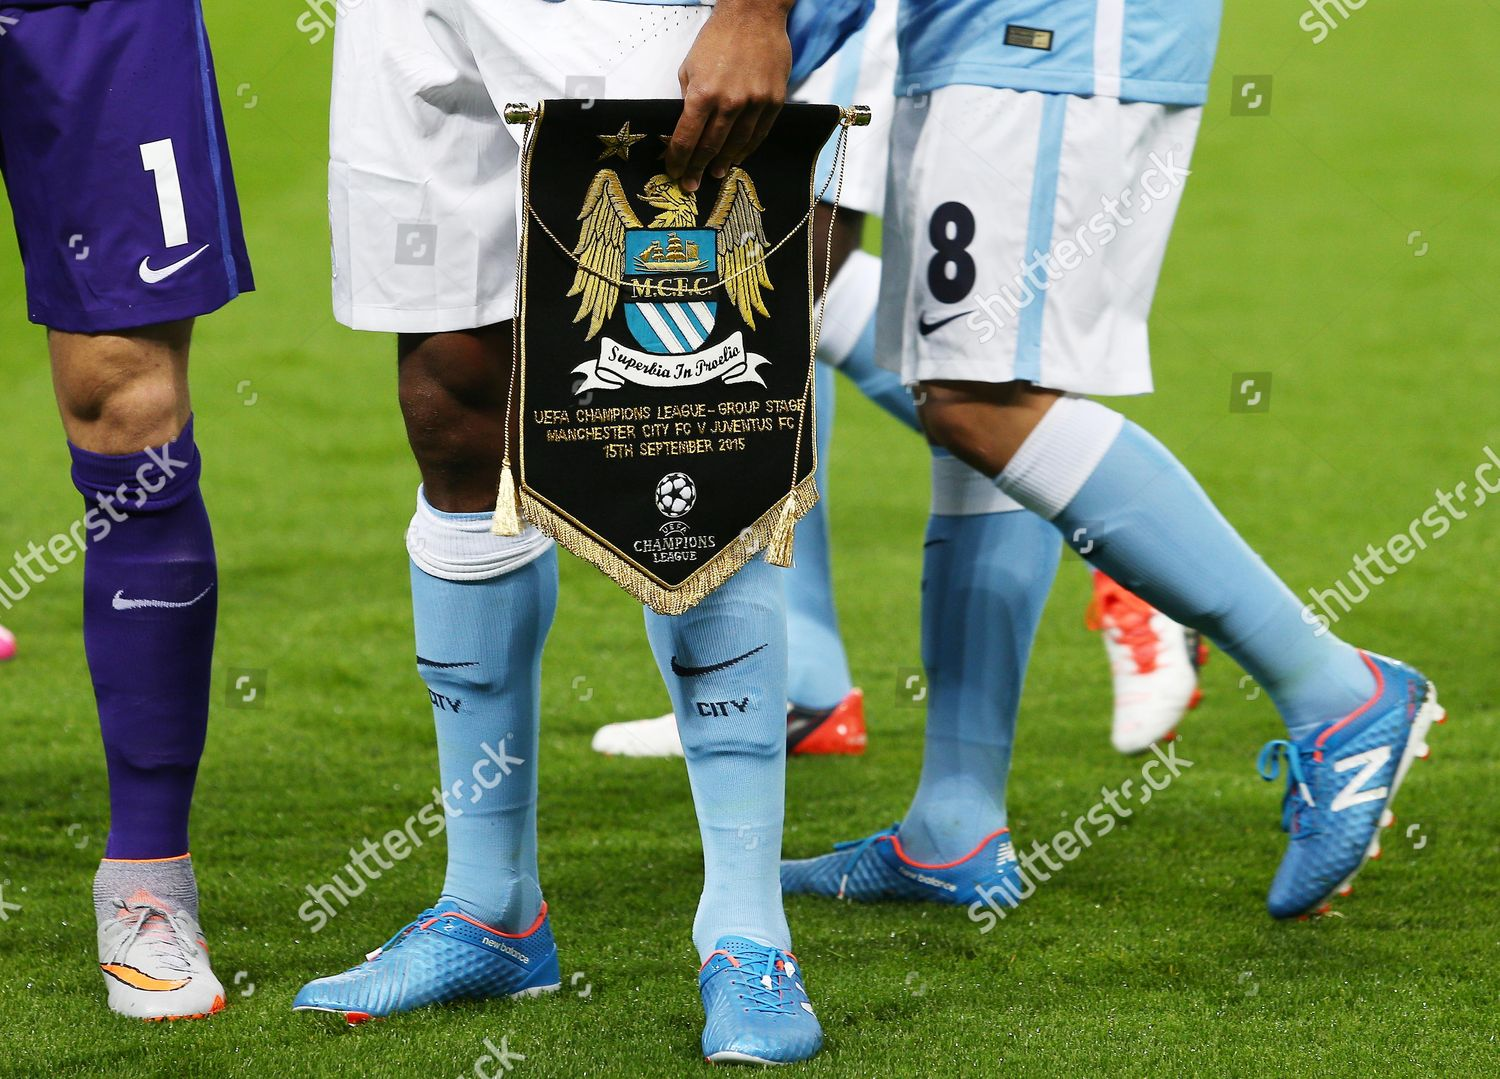 General View Match Pennant During Uefa Champions Editorial Stock Photo Stock Image Shutterstock